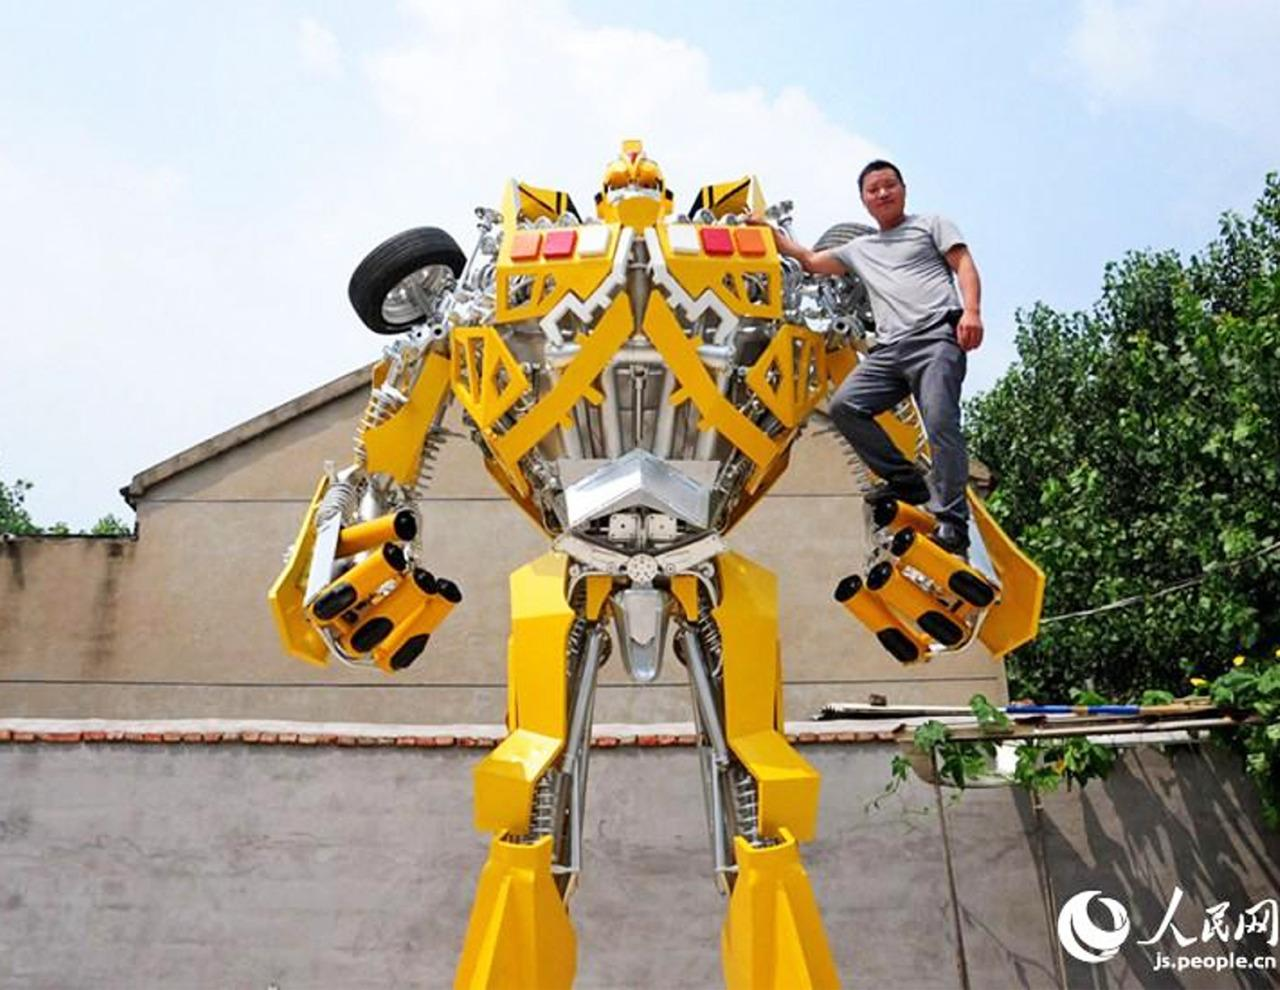 """<p>Wang Liansheng, a village welder in Jingtou Town, China, created the 16.4 feet, 6,000 pound Autobot, Bumblebee, with help from his brother, Wang Yugan. He was inspired to work on the year-long project after taking his son to see the latest Transformers film last year. (Credit: <a href=""""http://js.people.cn/"""" rel=""""nofollow noopener"""" target=""""_blank"""" data-ylk=""""slk:Js.people.cn"""" class=""""link rapid-noclick-resp"""">Js.people.cn</a>)</p>"""